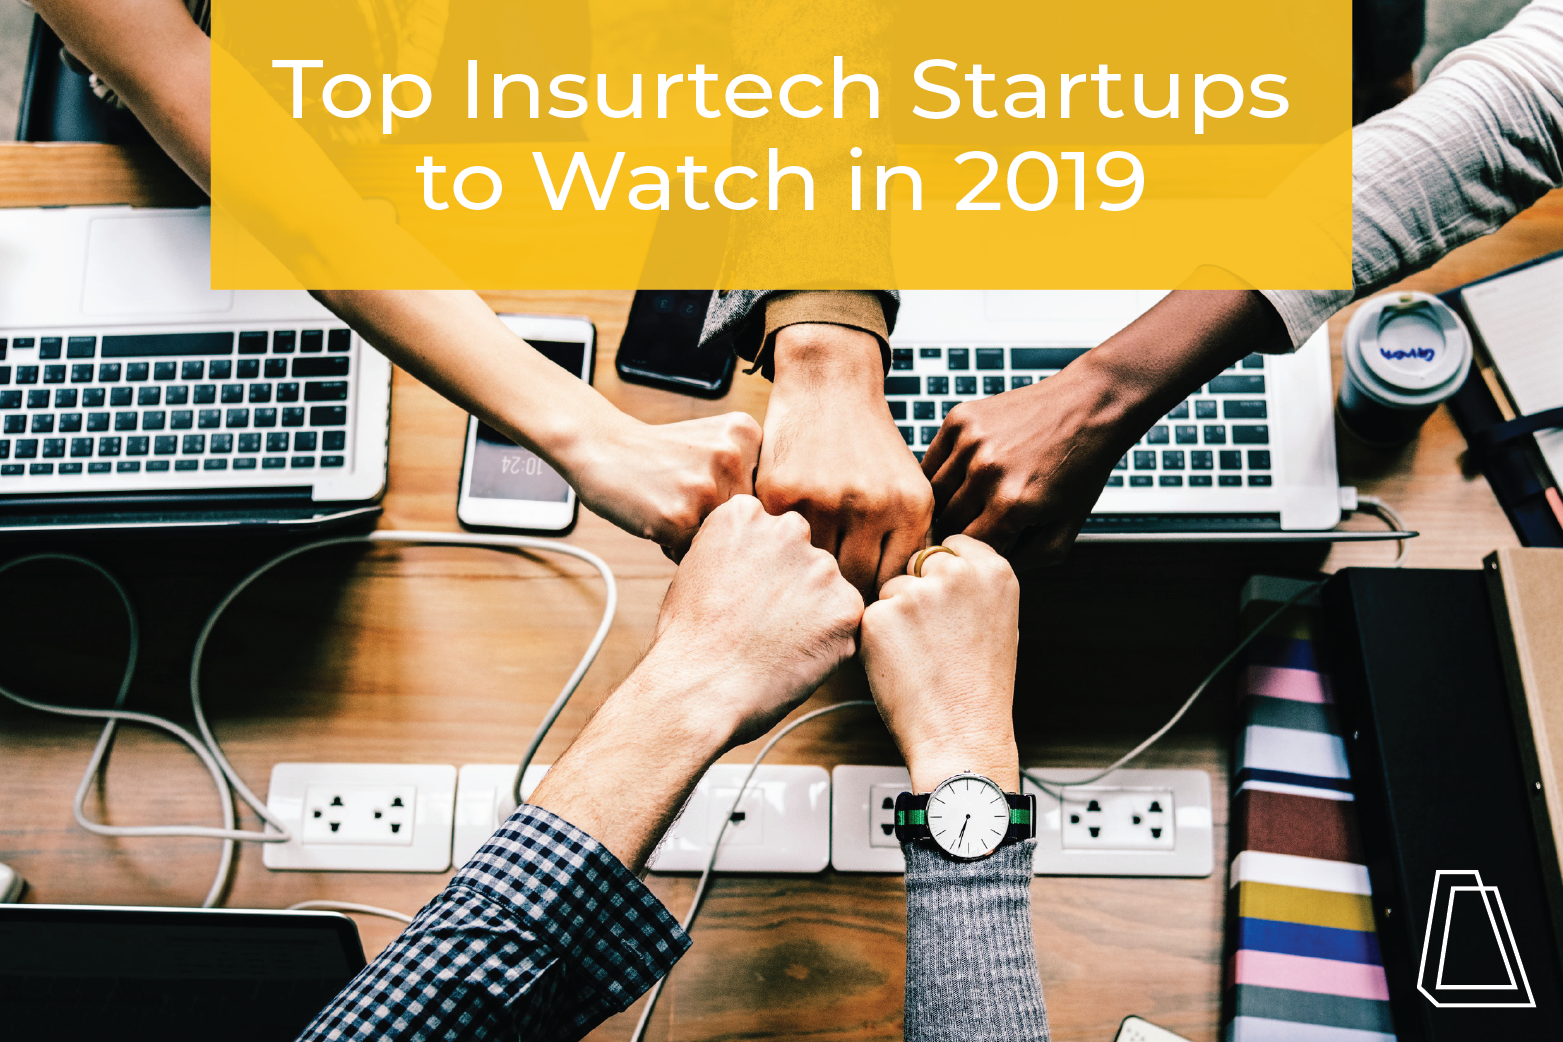 Top Insurtech Startups to Watch in 2019